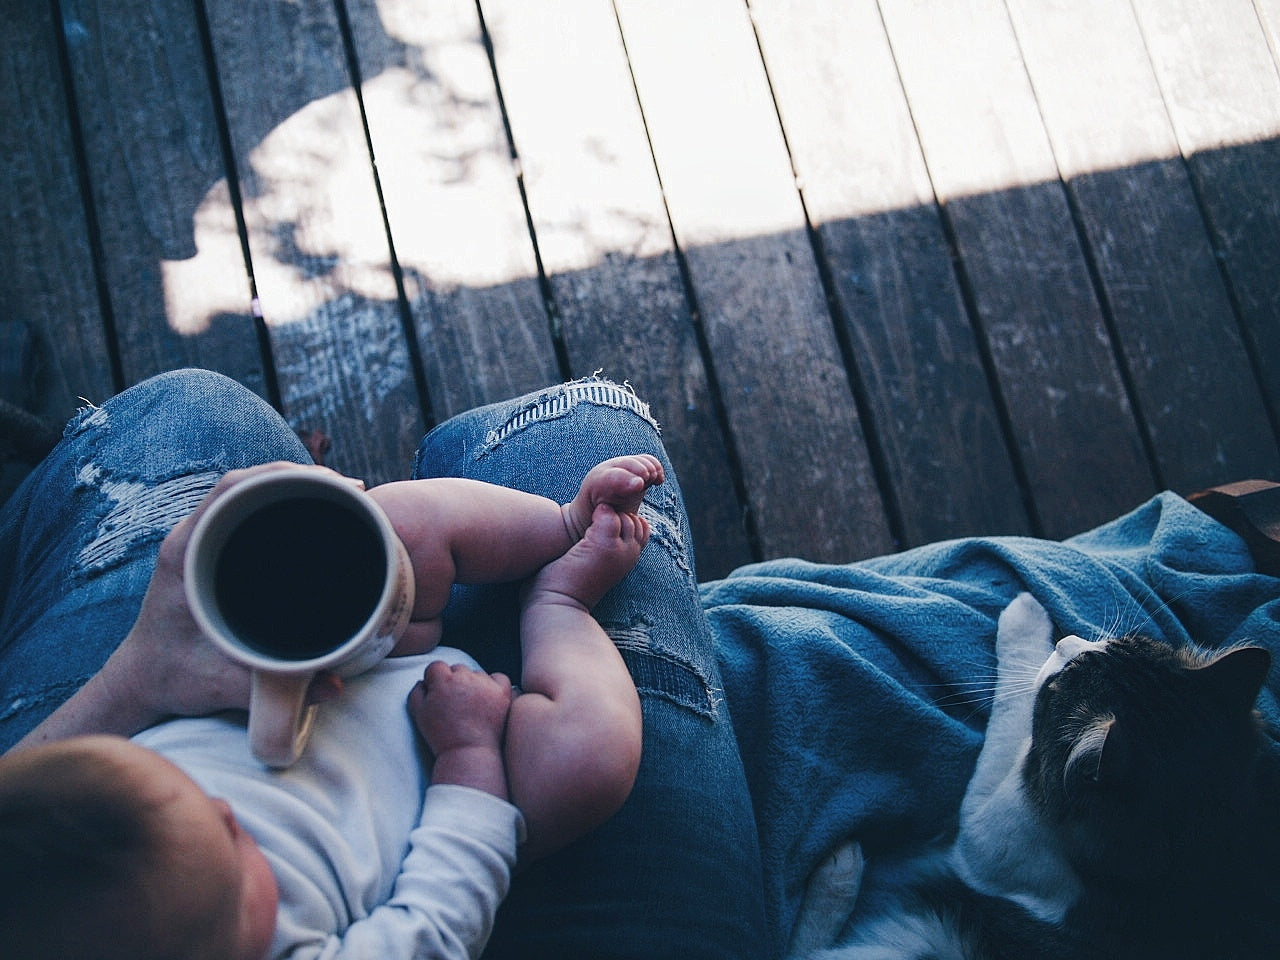 View from the top, we see a baby on a lap, with a cup of coffee in the parent's hand, and a cat sitting next to them